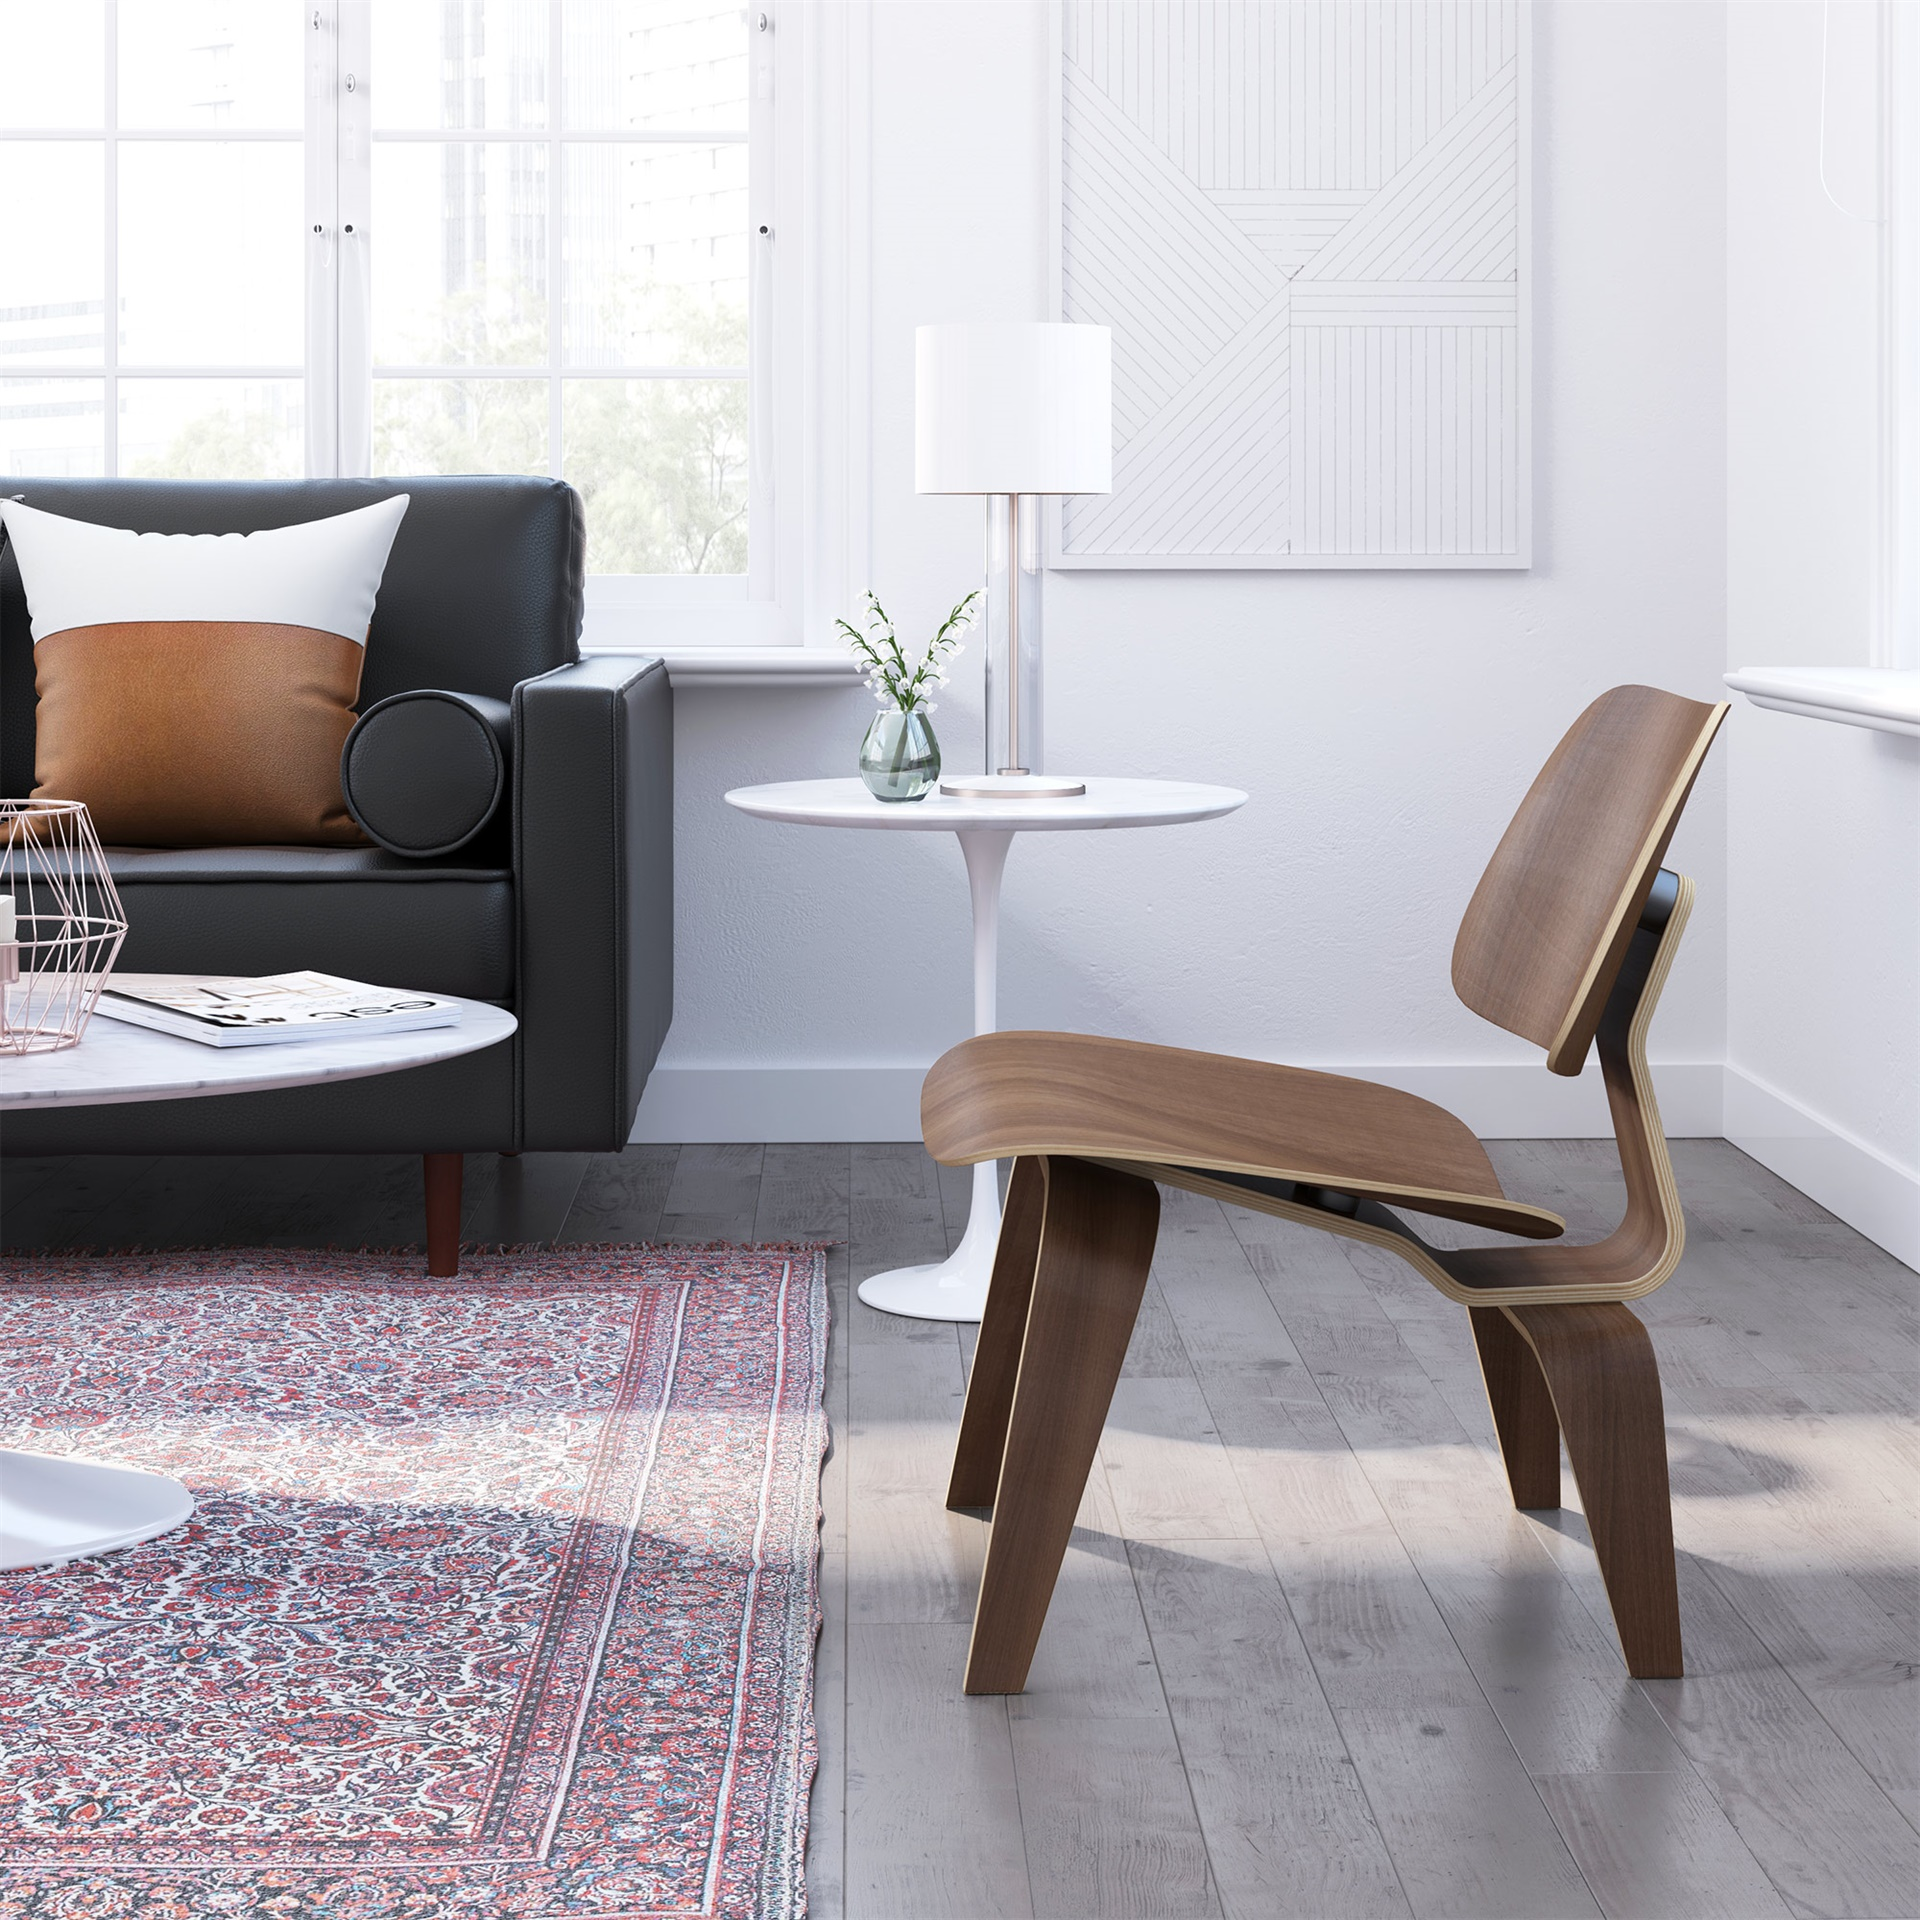 Plywood Lounge Chair With Wood Legs